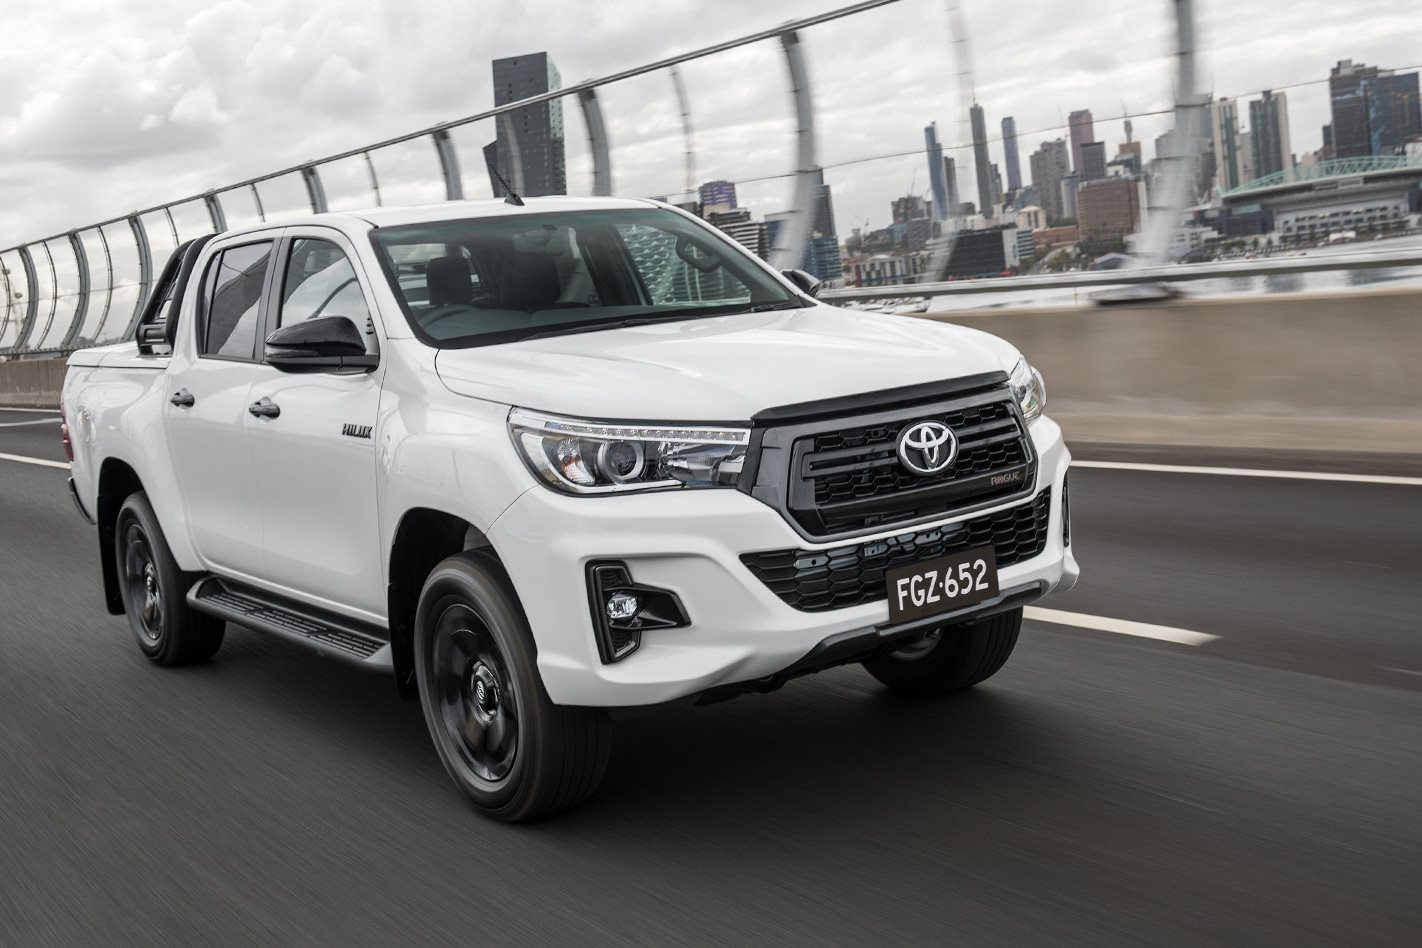 2018 toyota hilux rogue rugged and rugged x review. Black Bedroom Furniture Sets. Home Design Ideas